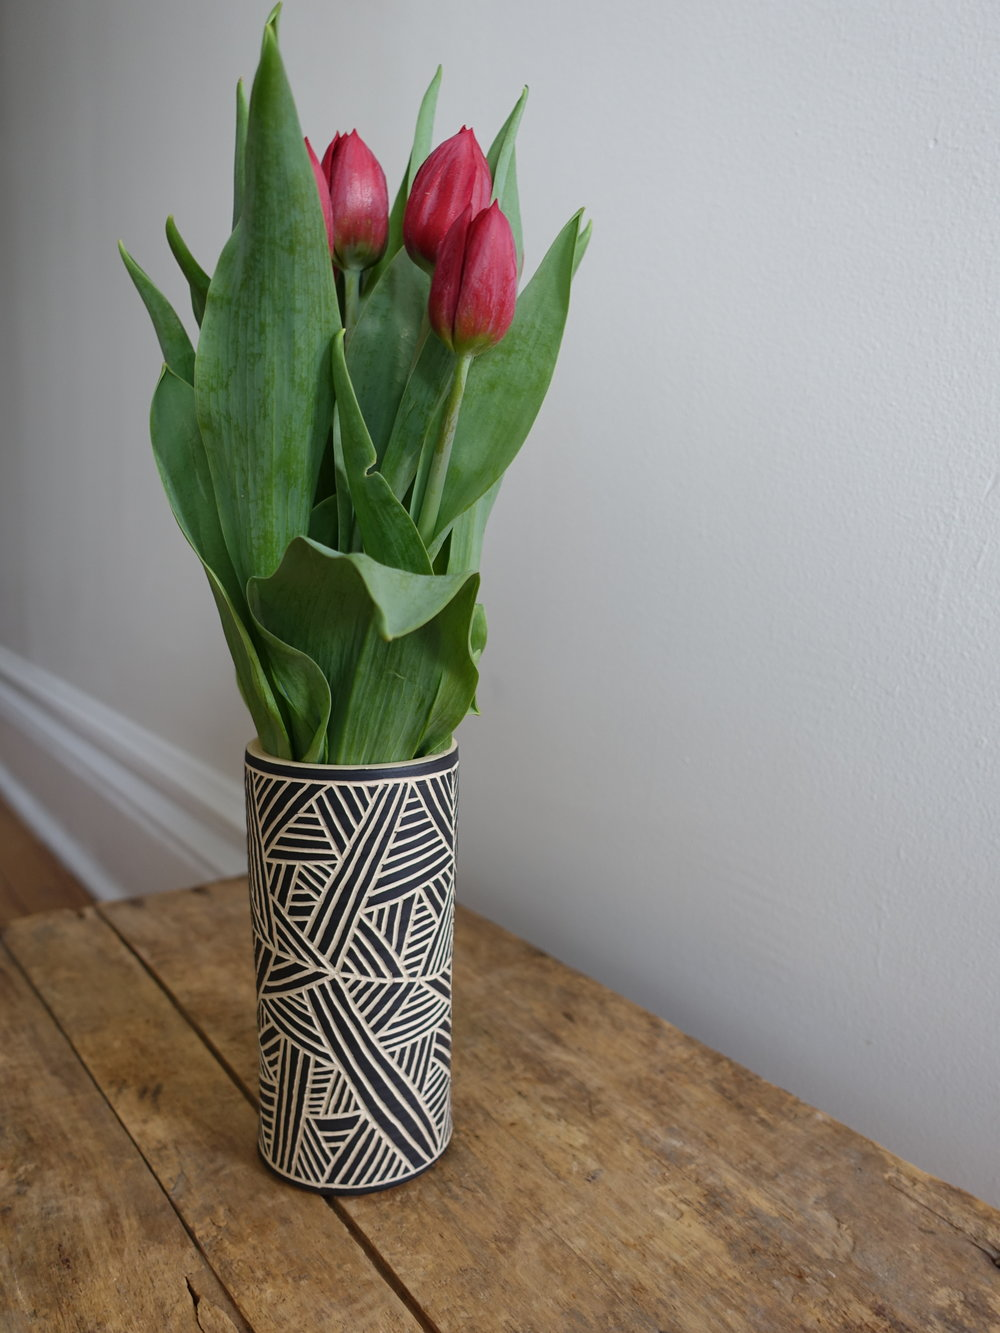 etched vase tulips (1).JPG